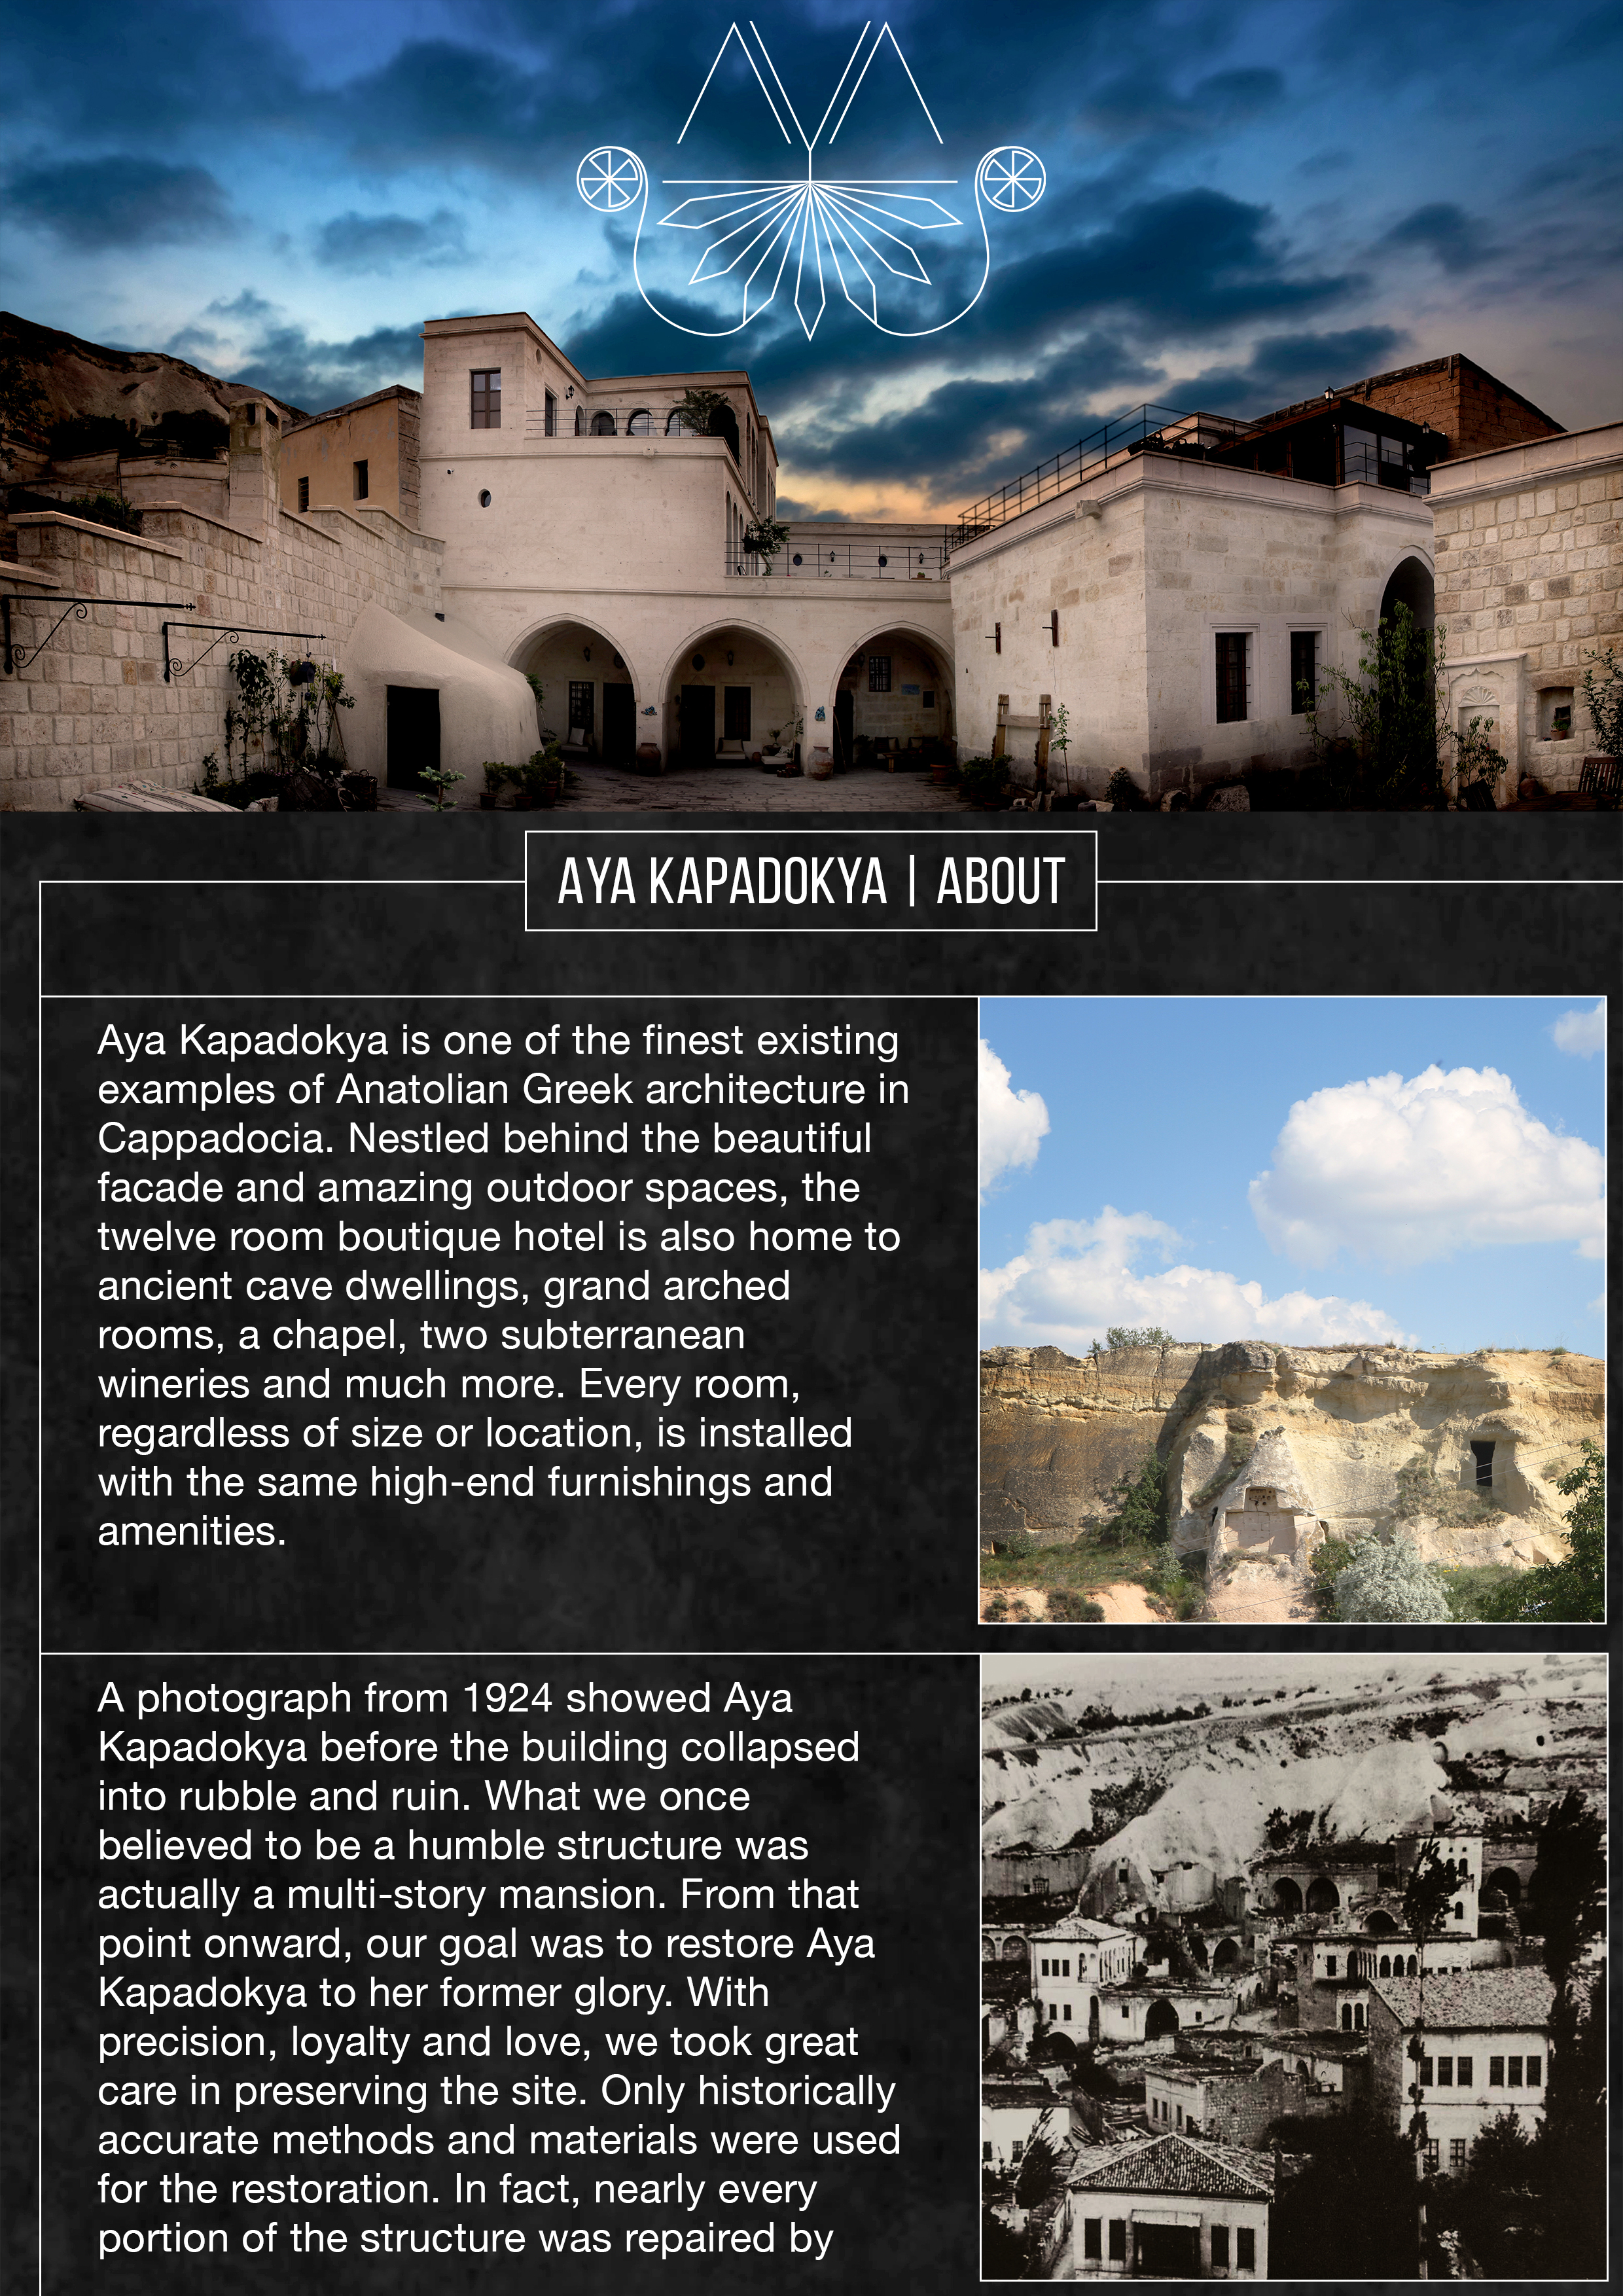 aya-kapadokya-infographic-fact-sheet-0001